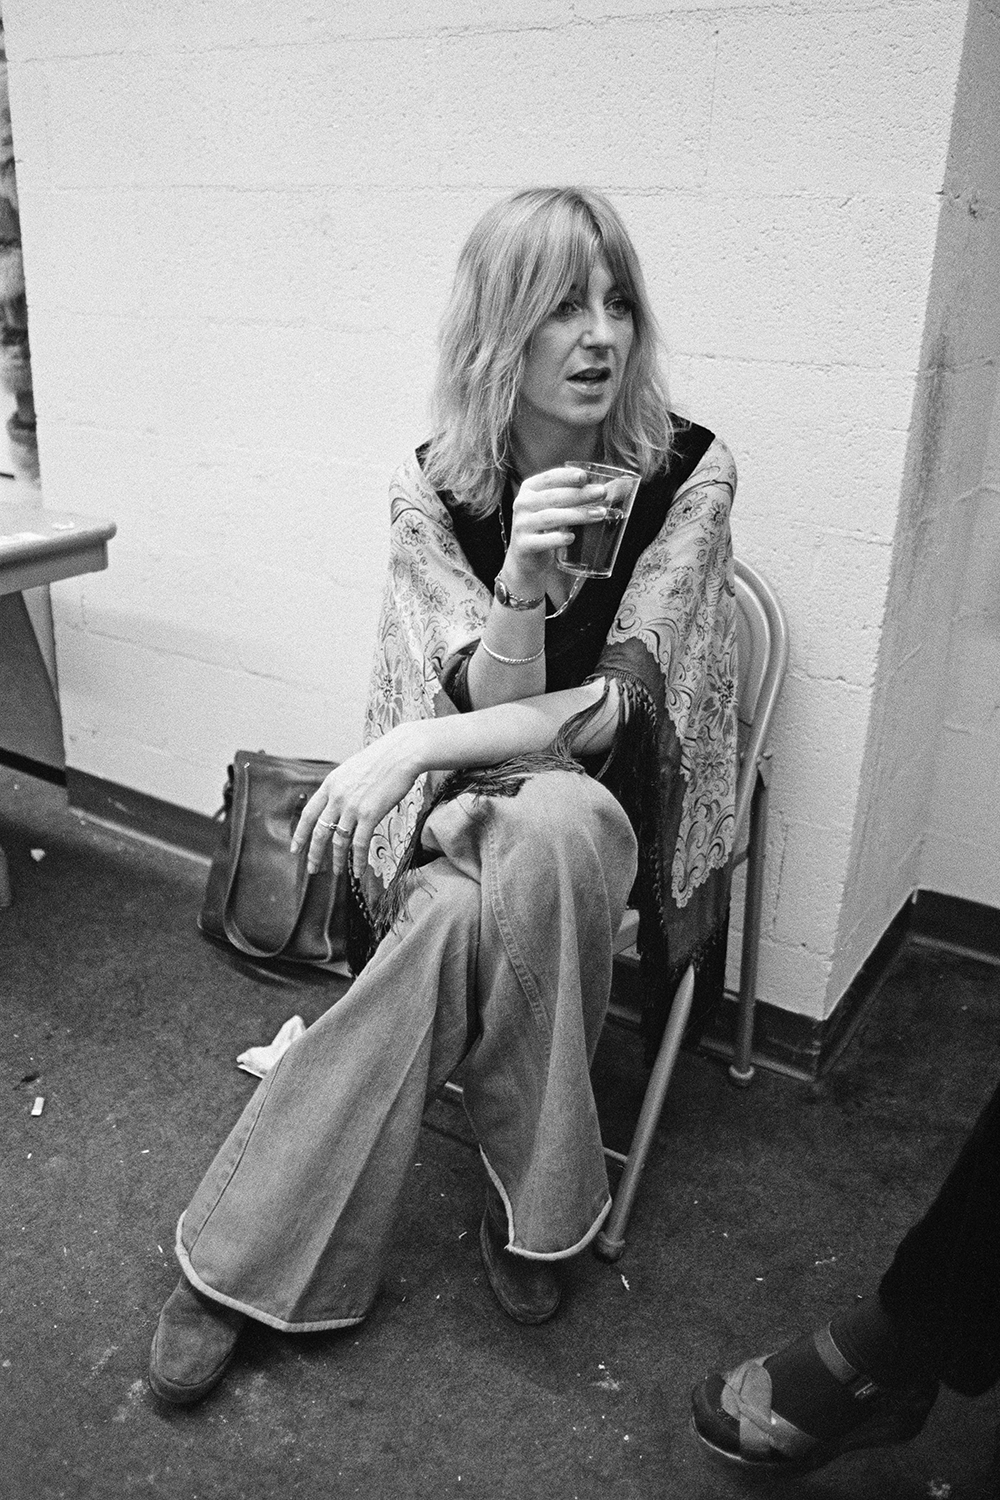 christine mcvie legs lady rock heroes in 2019 fleetwood mac stevie nicks fleetwood mac. Black Bedroom Furniture Sets. Home Design Ideas